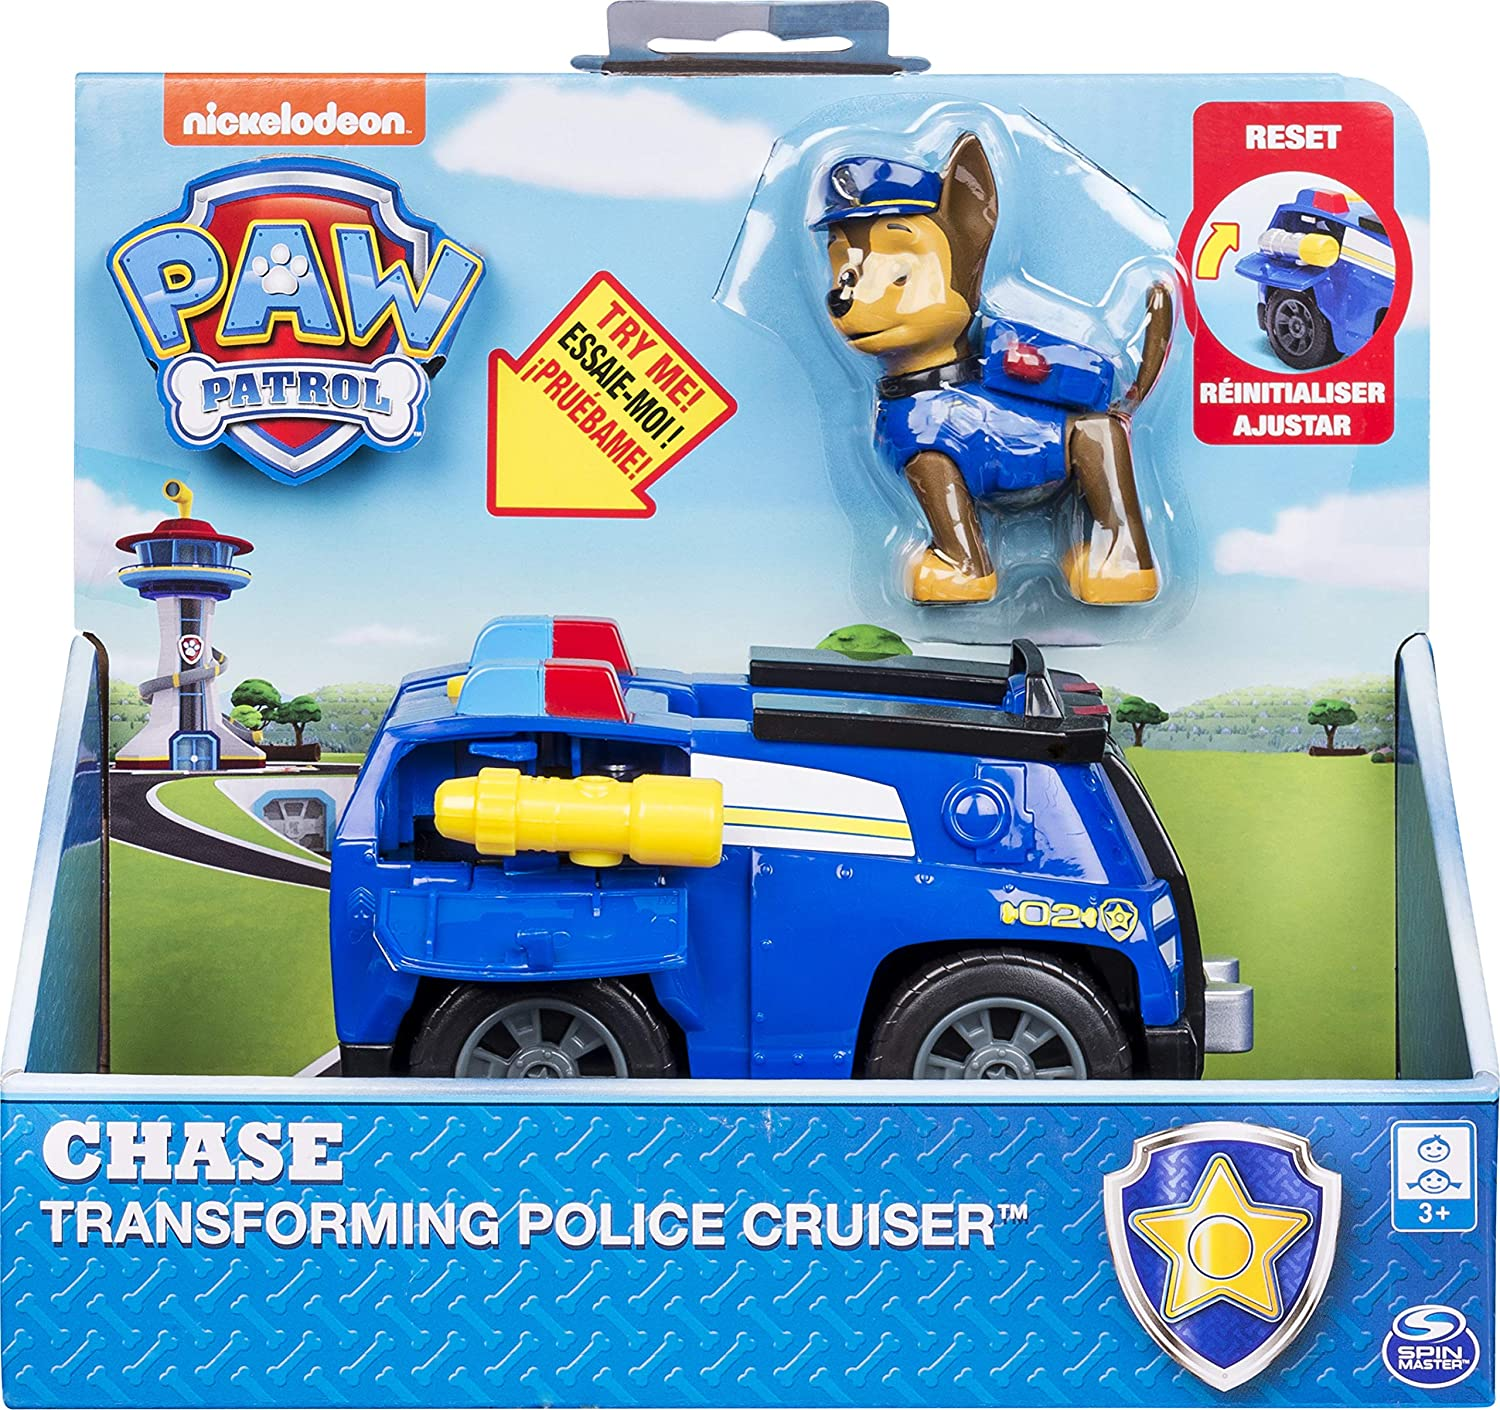 PAW PATROL-Chase's with Flip-Open Megaphone, for Ages 3 and Up Chase's Transforming Police Cruiser con megáfono abatible, para Edades de 3 y más, Color Gris (Spin Master 20101360)